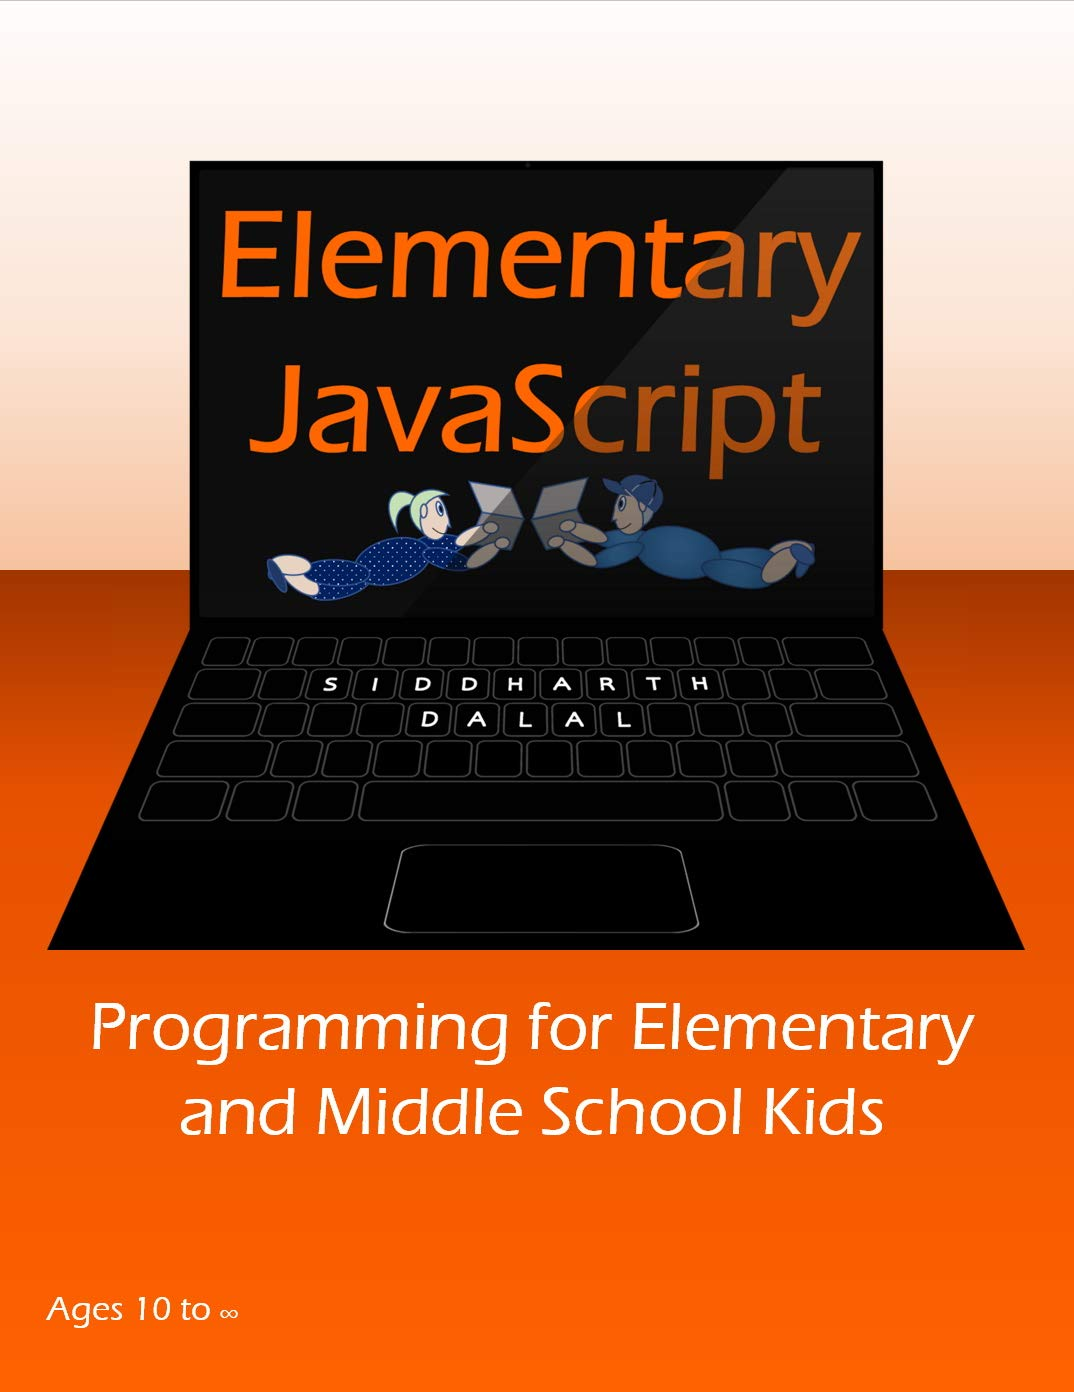 Elementary JavaScript: Programming for Elementary and Middle School Kids (JavaScript For Kids Book 1)